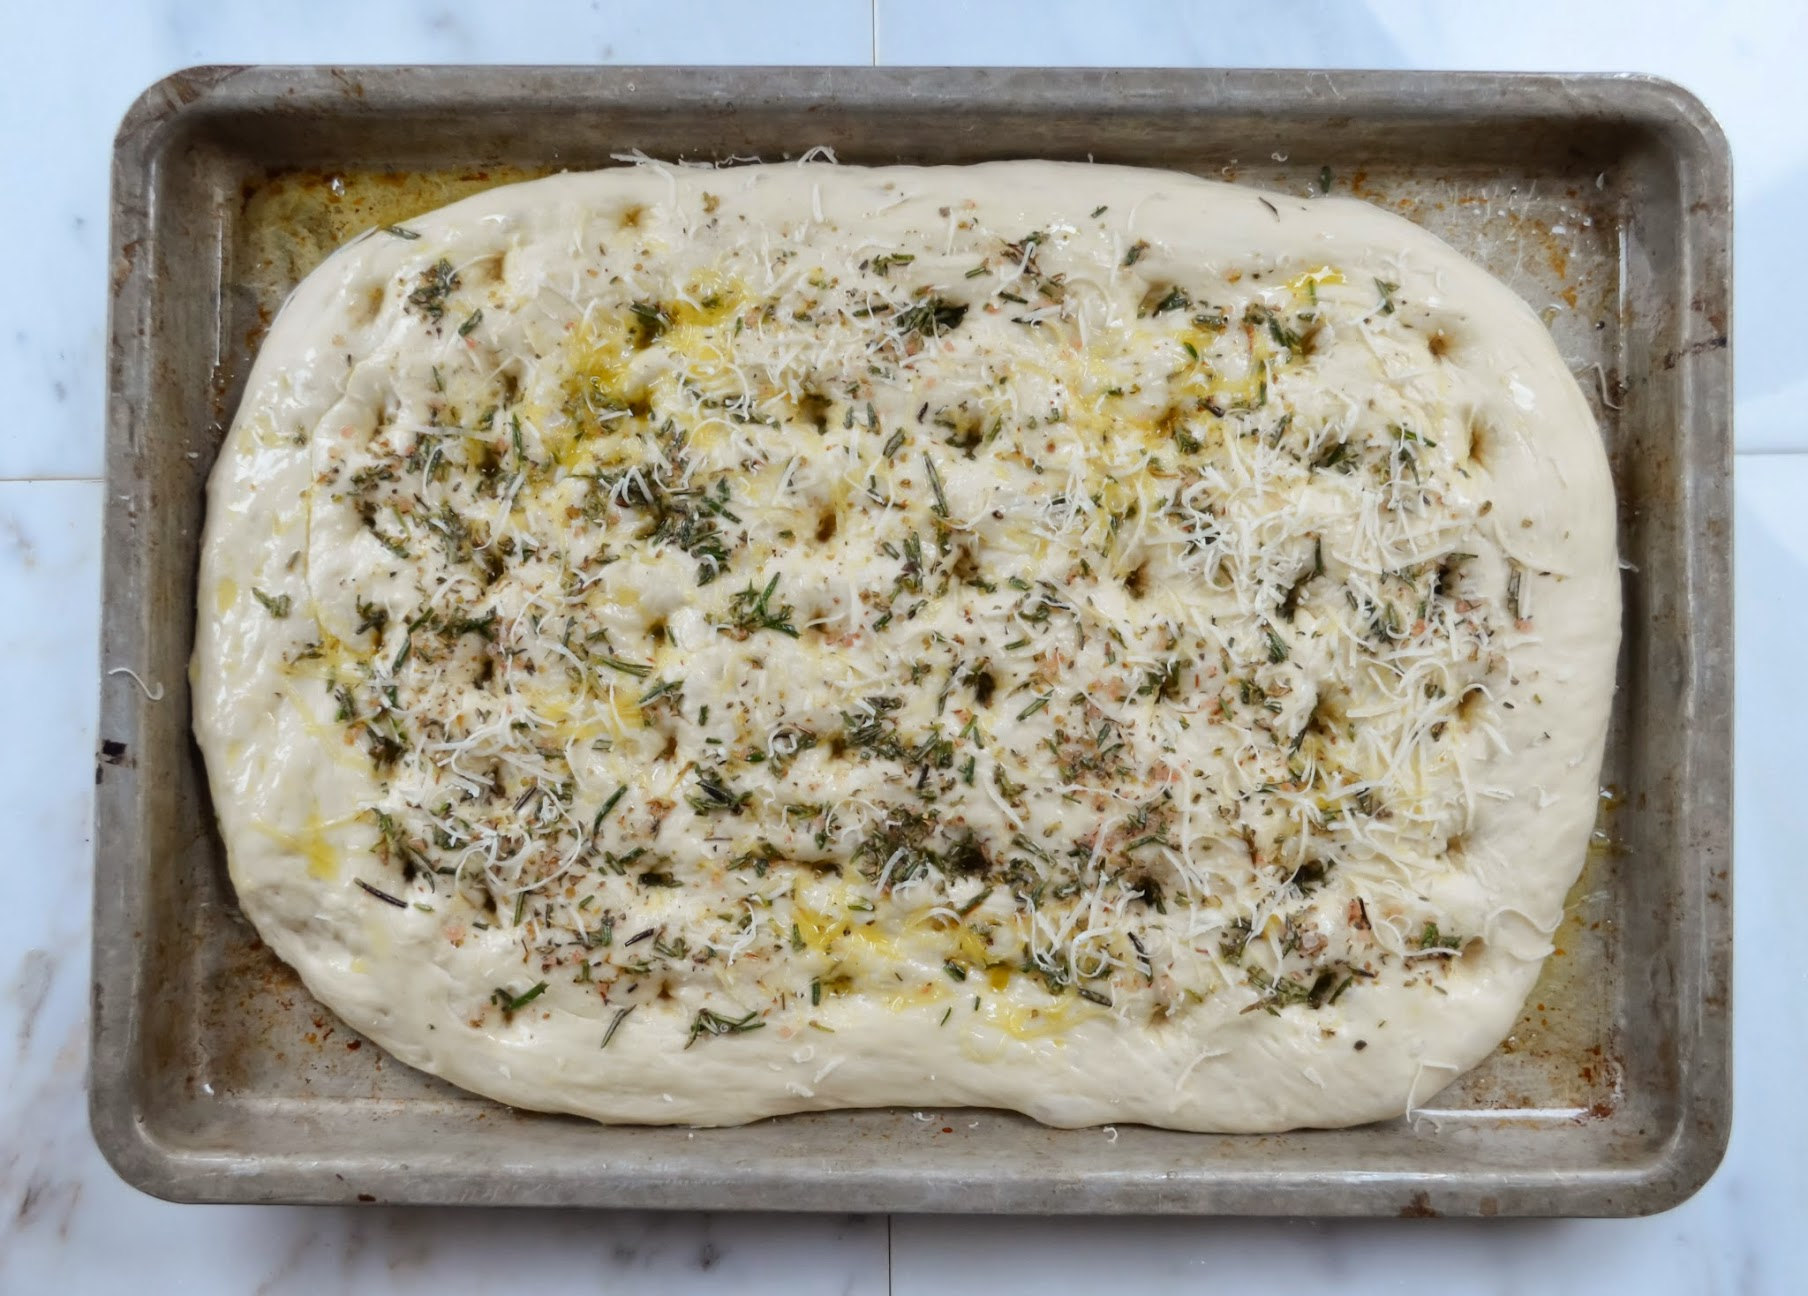 Herbed-Focaccia-Bread-Oven-Ready.jpg